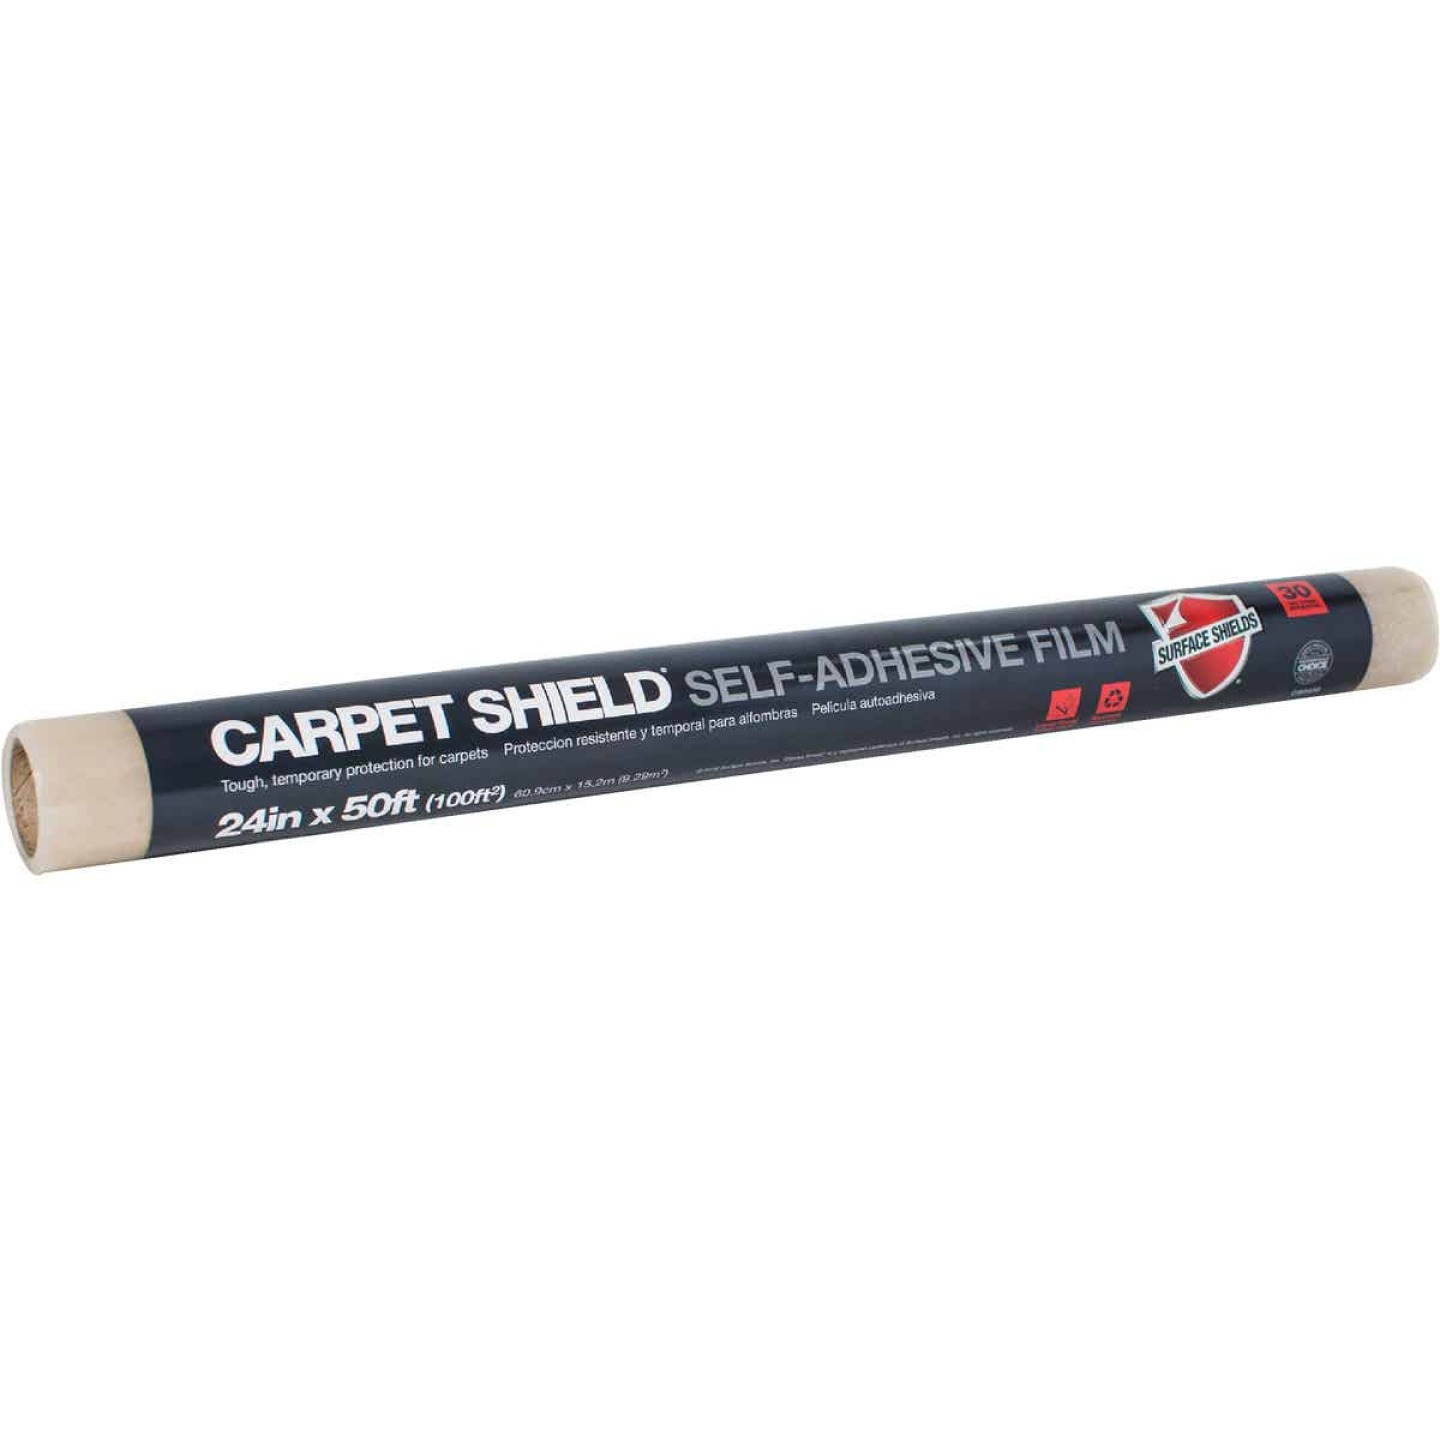 Surface Shields Carpet Shield 21 In. x 30 Ft. Self-Adhesive Film Floor Protector Image 1